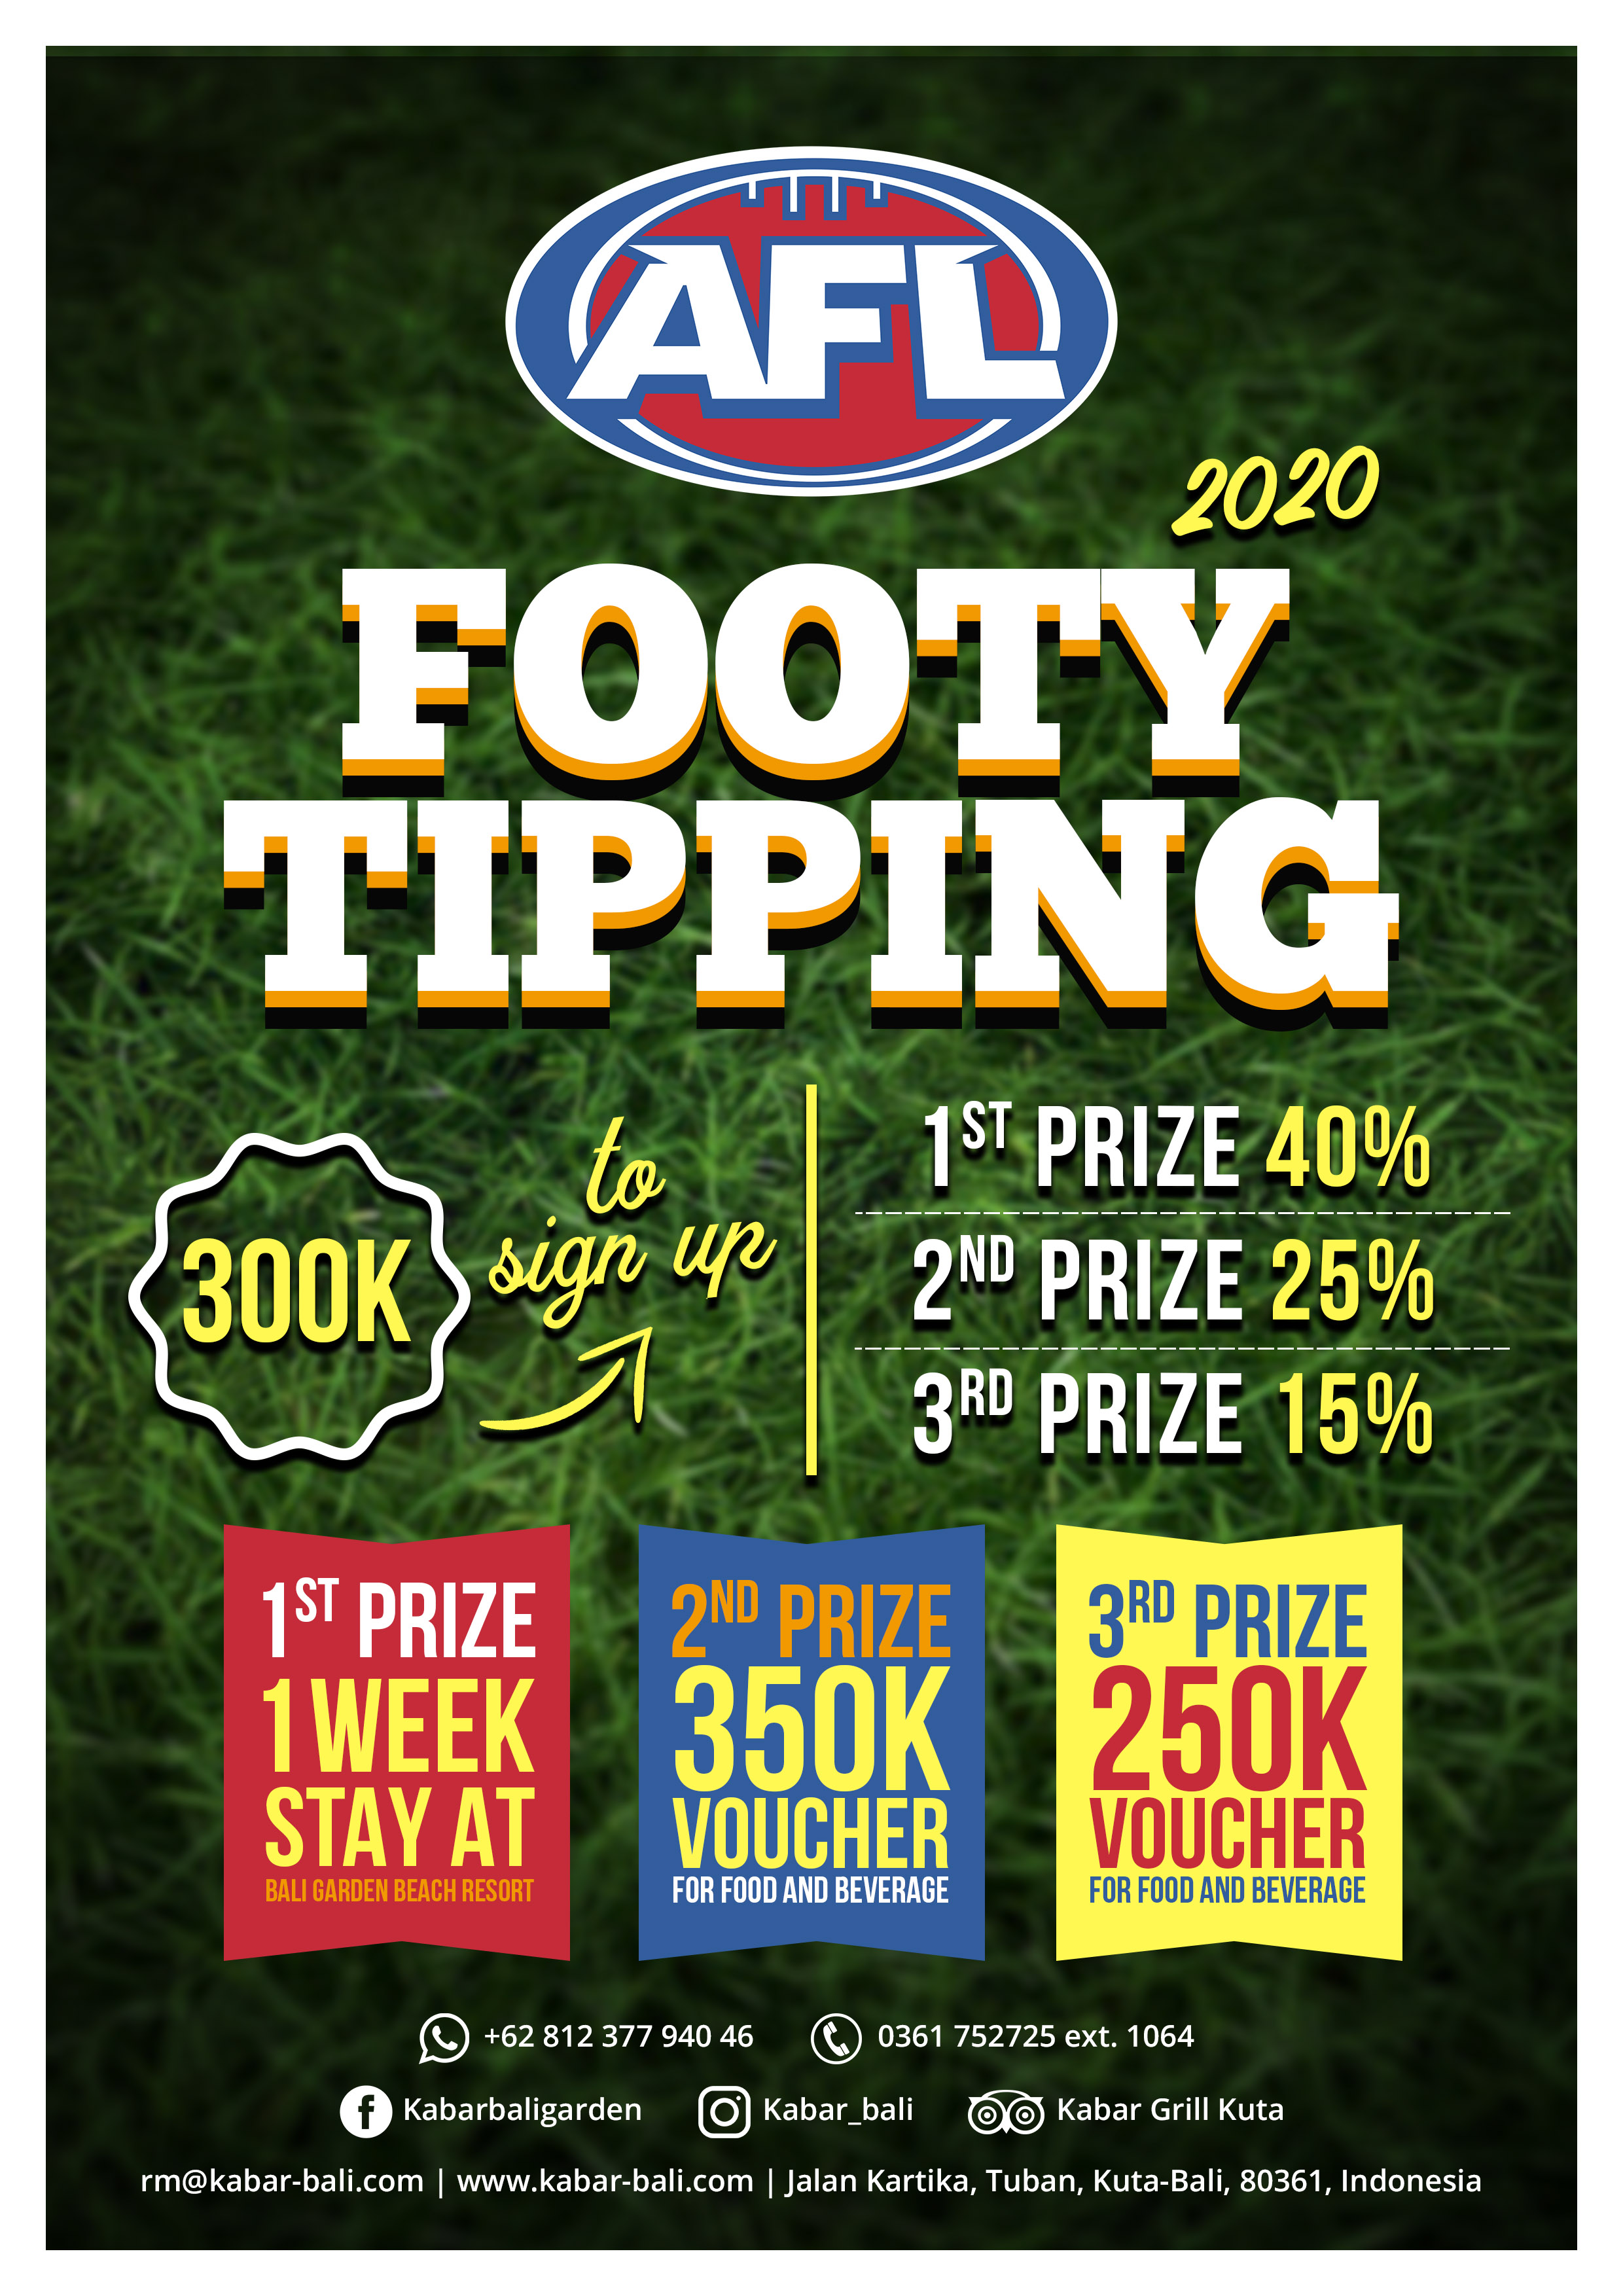 FootyTippingPrizes2020